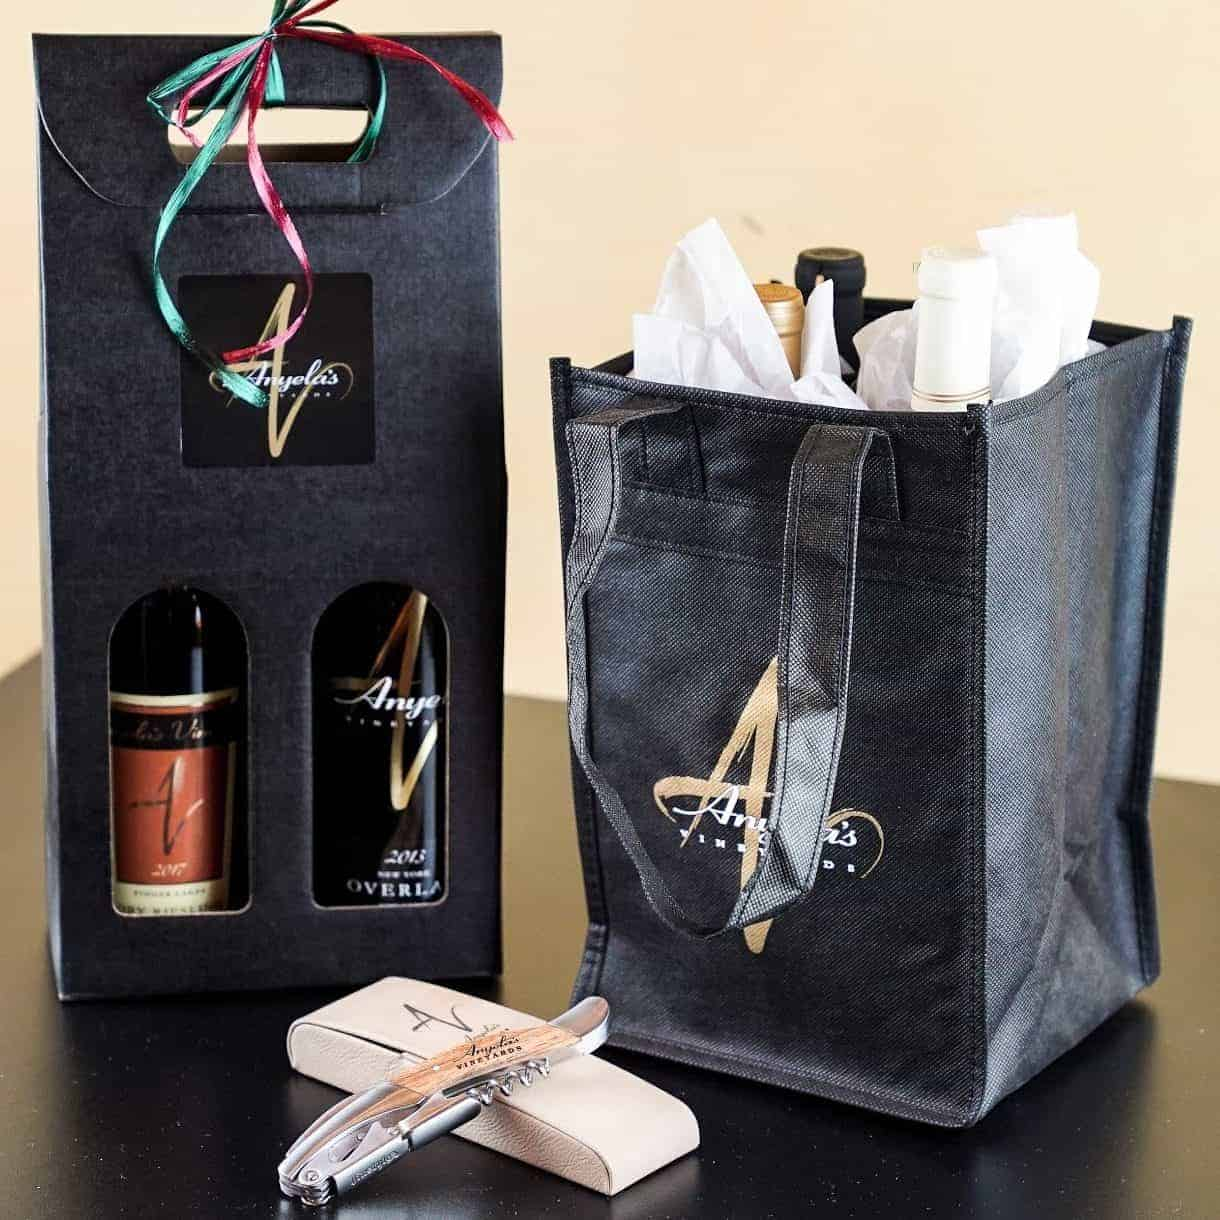 Corkscrew with Pouch